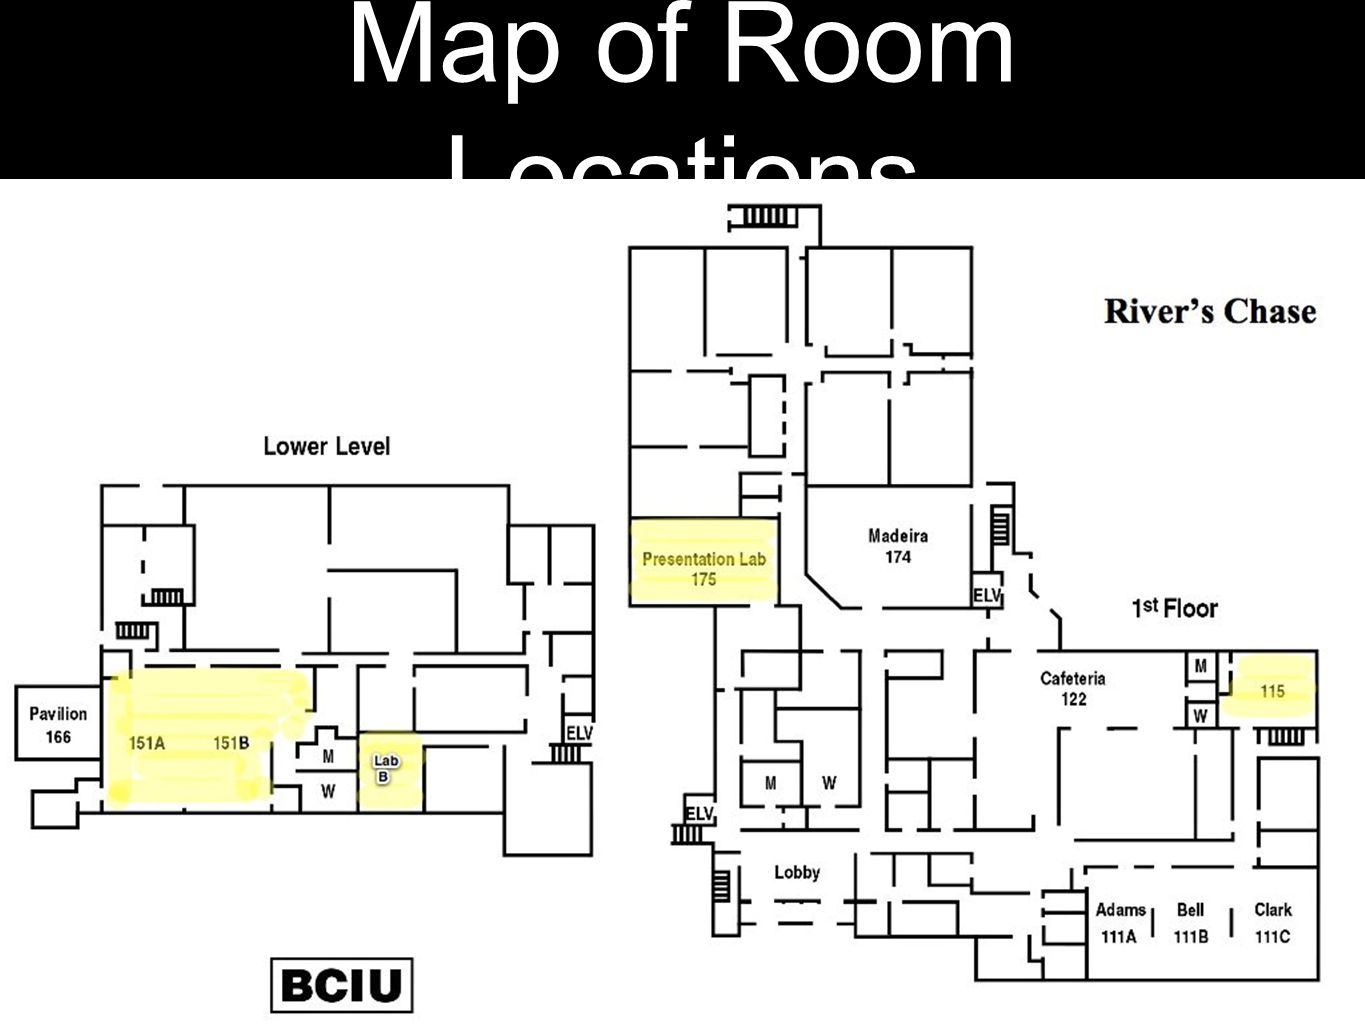 Map of Room Locations